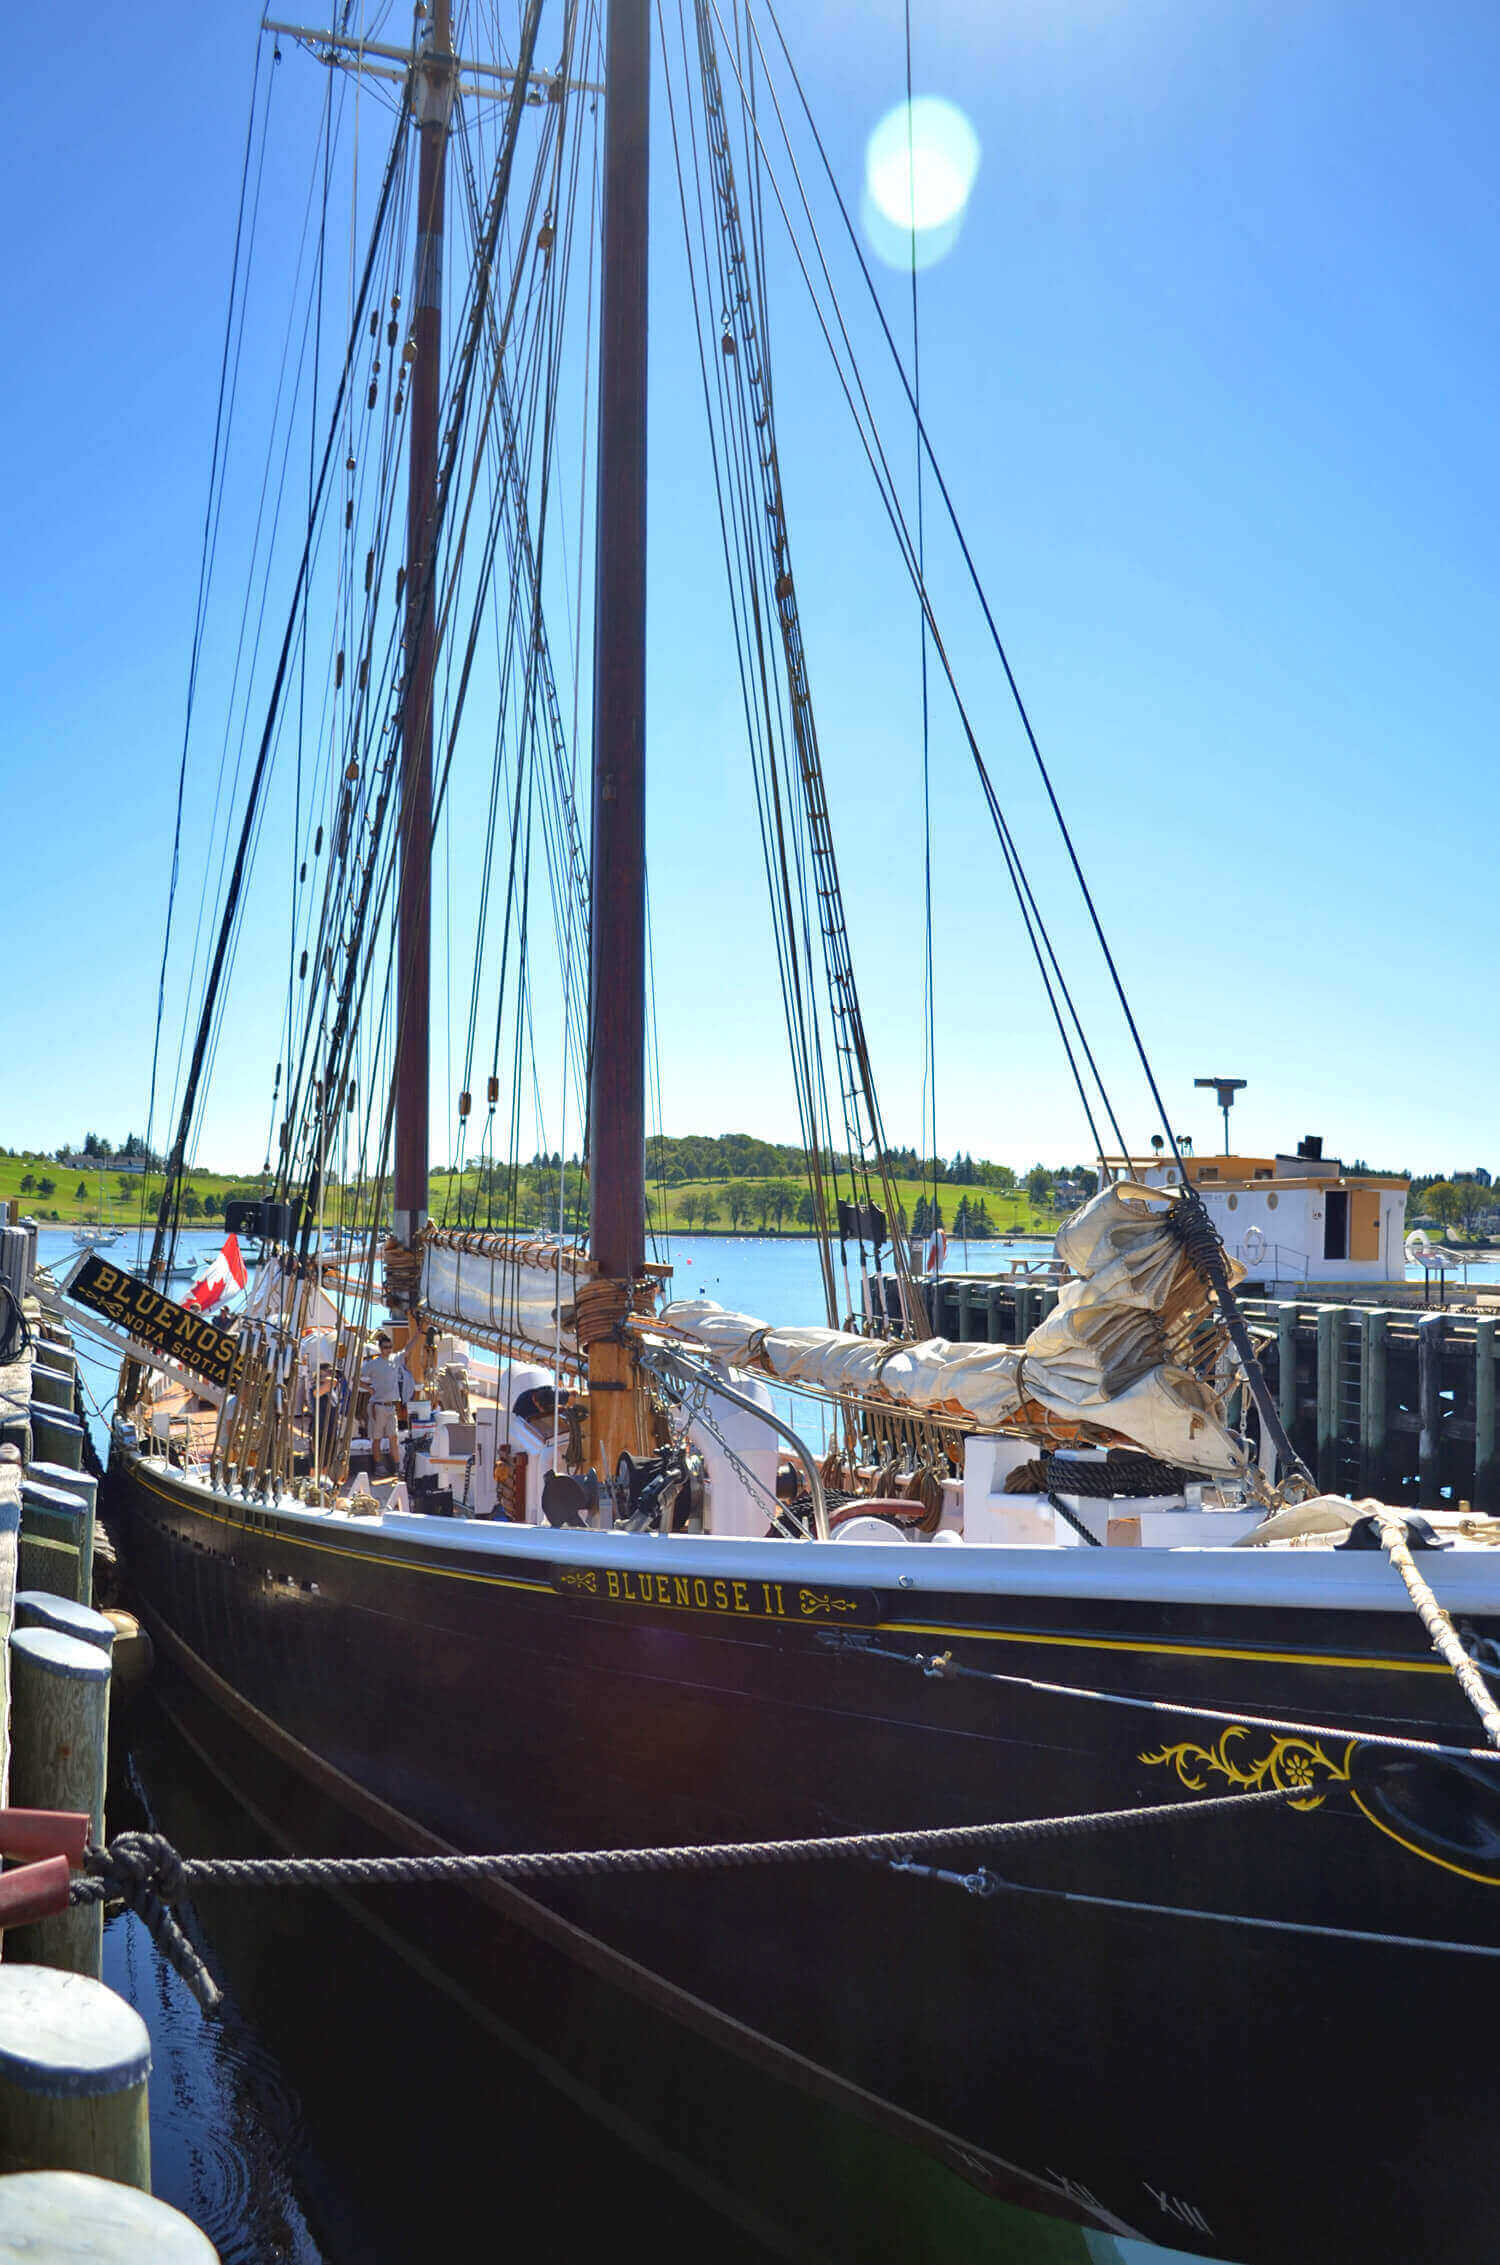 The Bluenose II is one of the best things to do in Nova Scotia